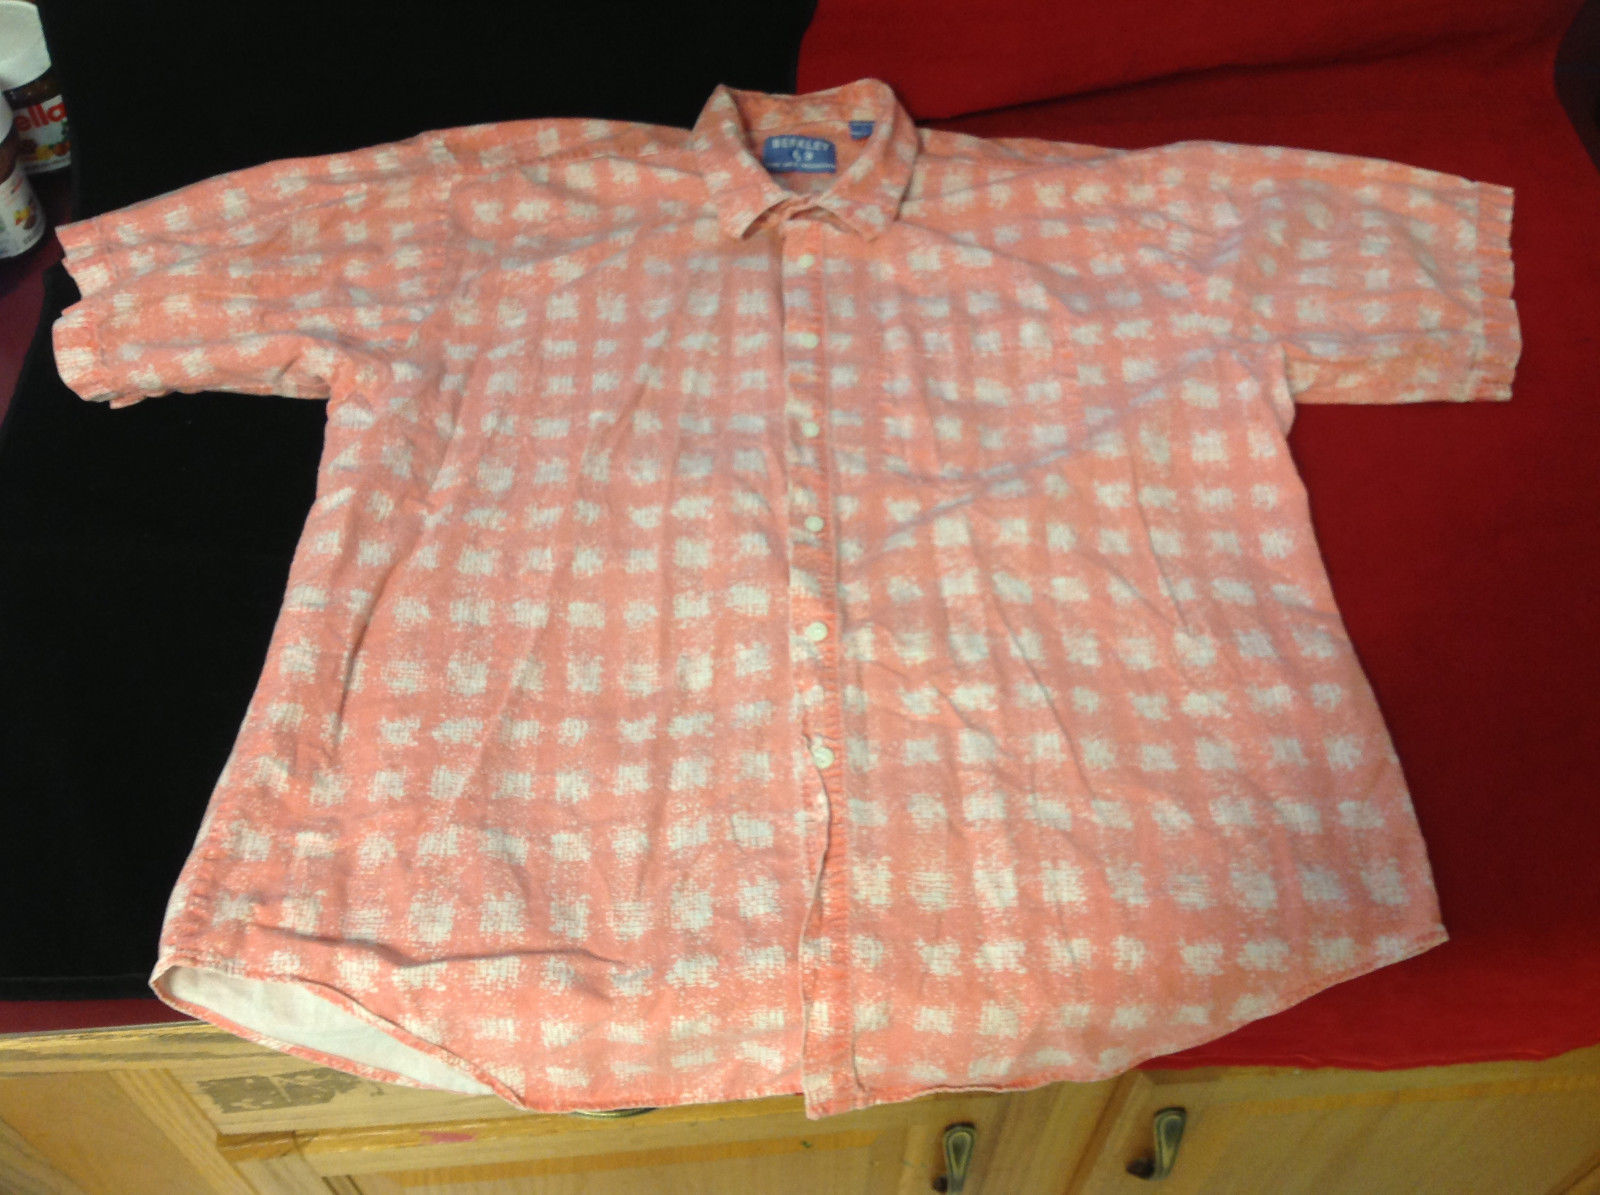 Berkley Brand Mens Button Down Blouse Light Red Peach Gingham Check Pattern L